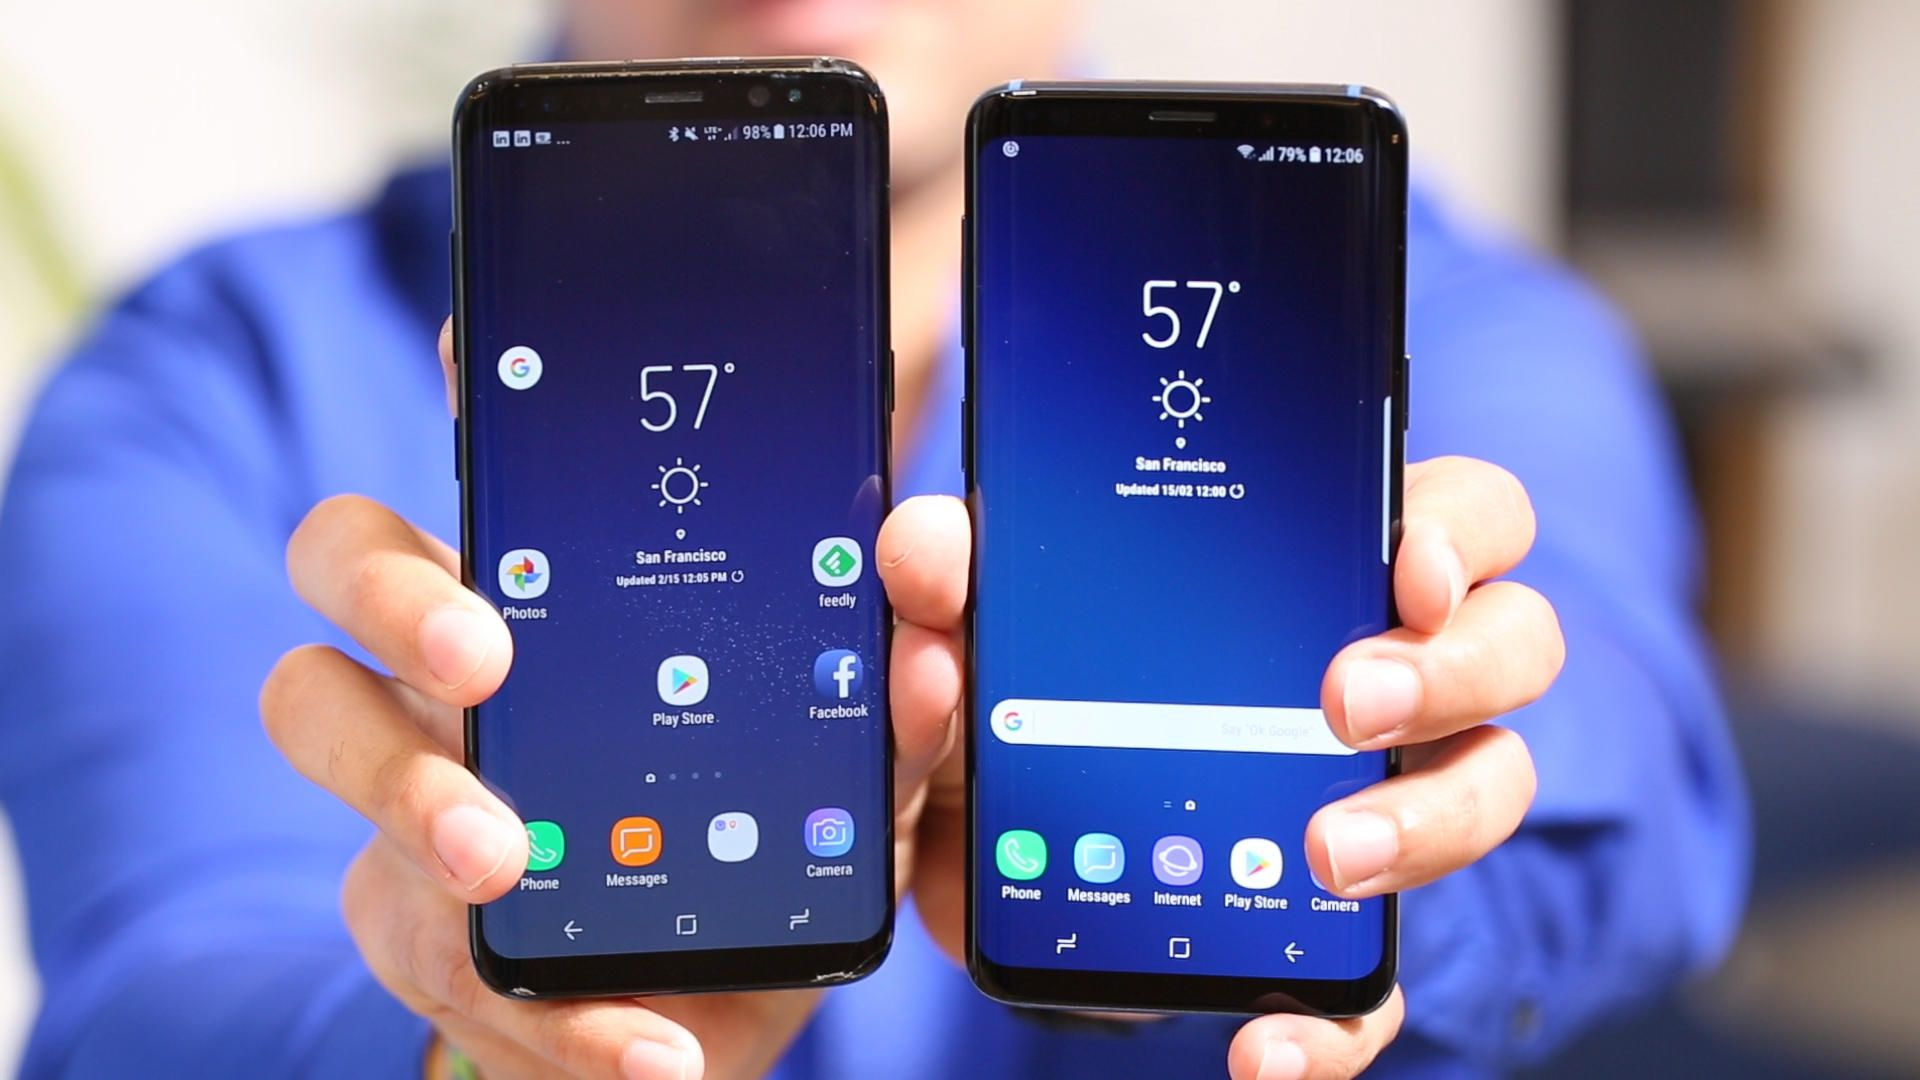 Samsung Galaxy S9 vs S8